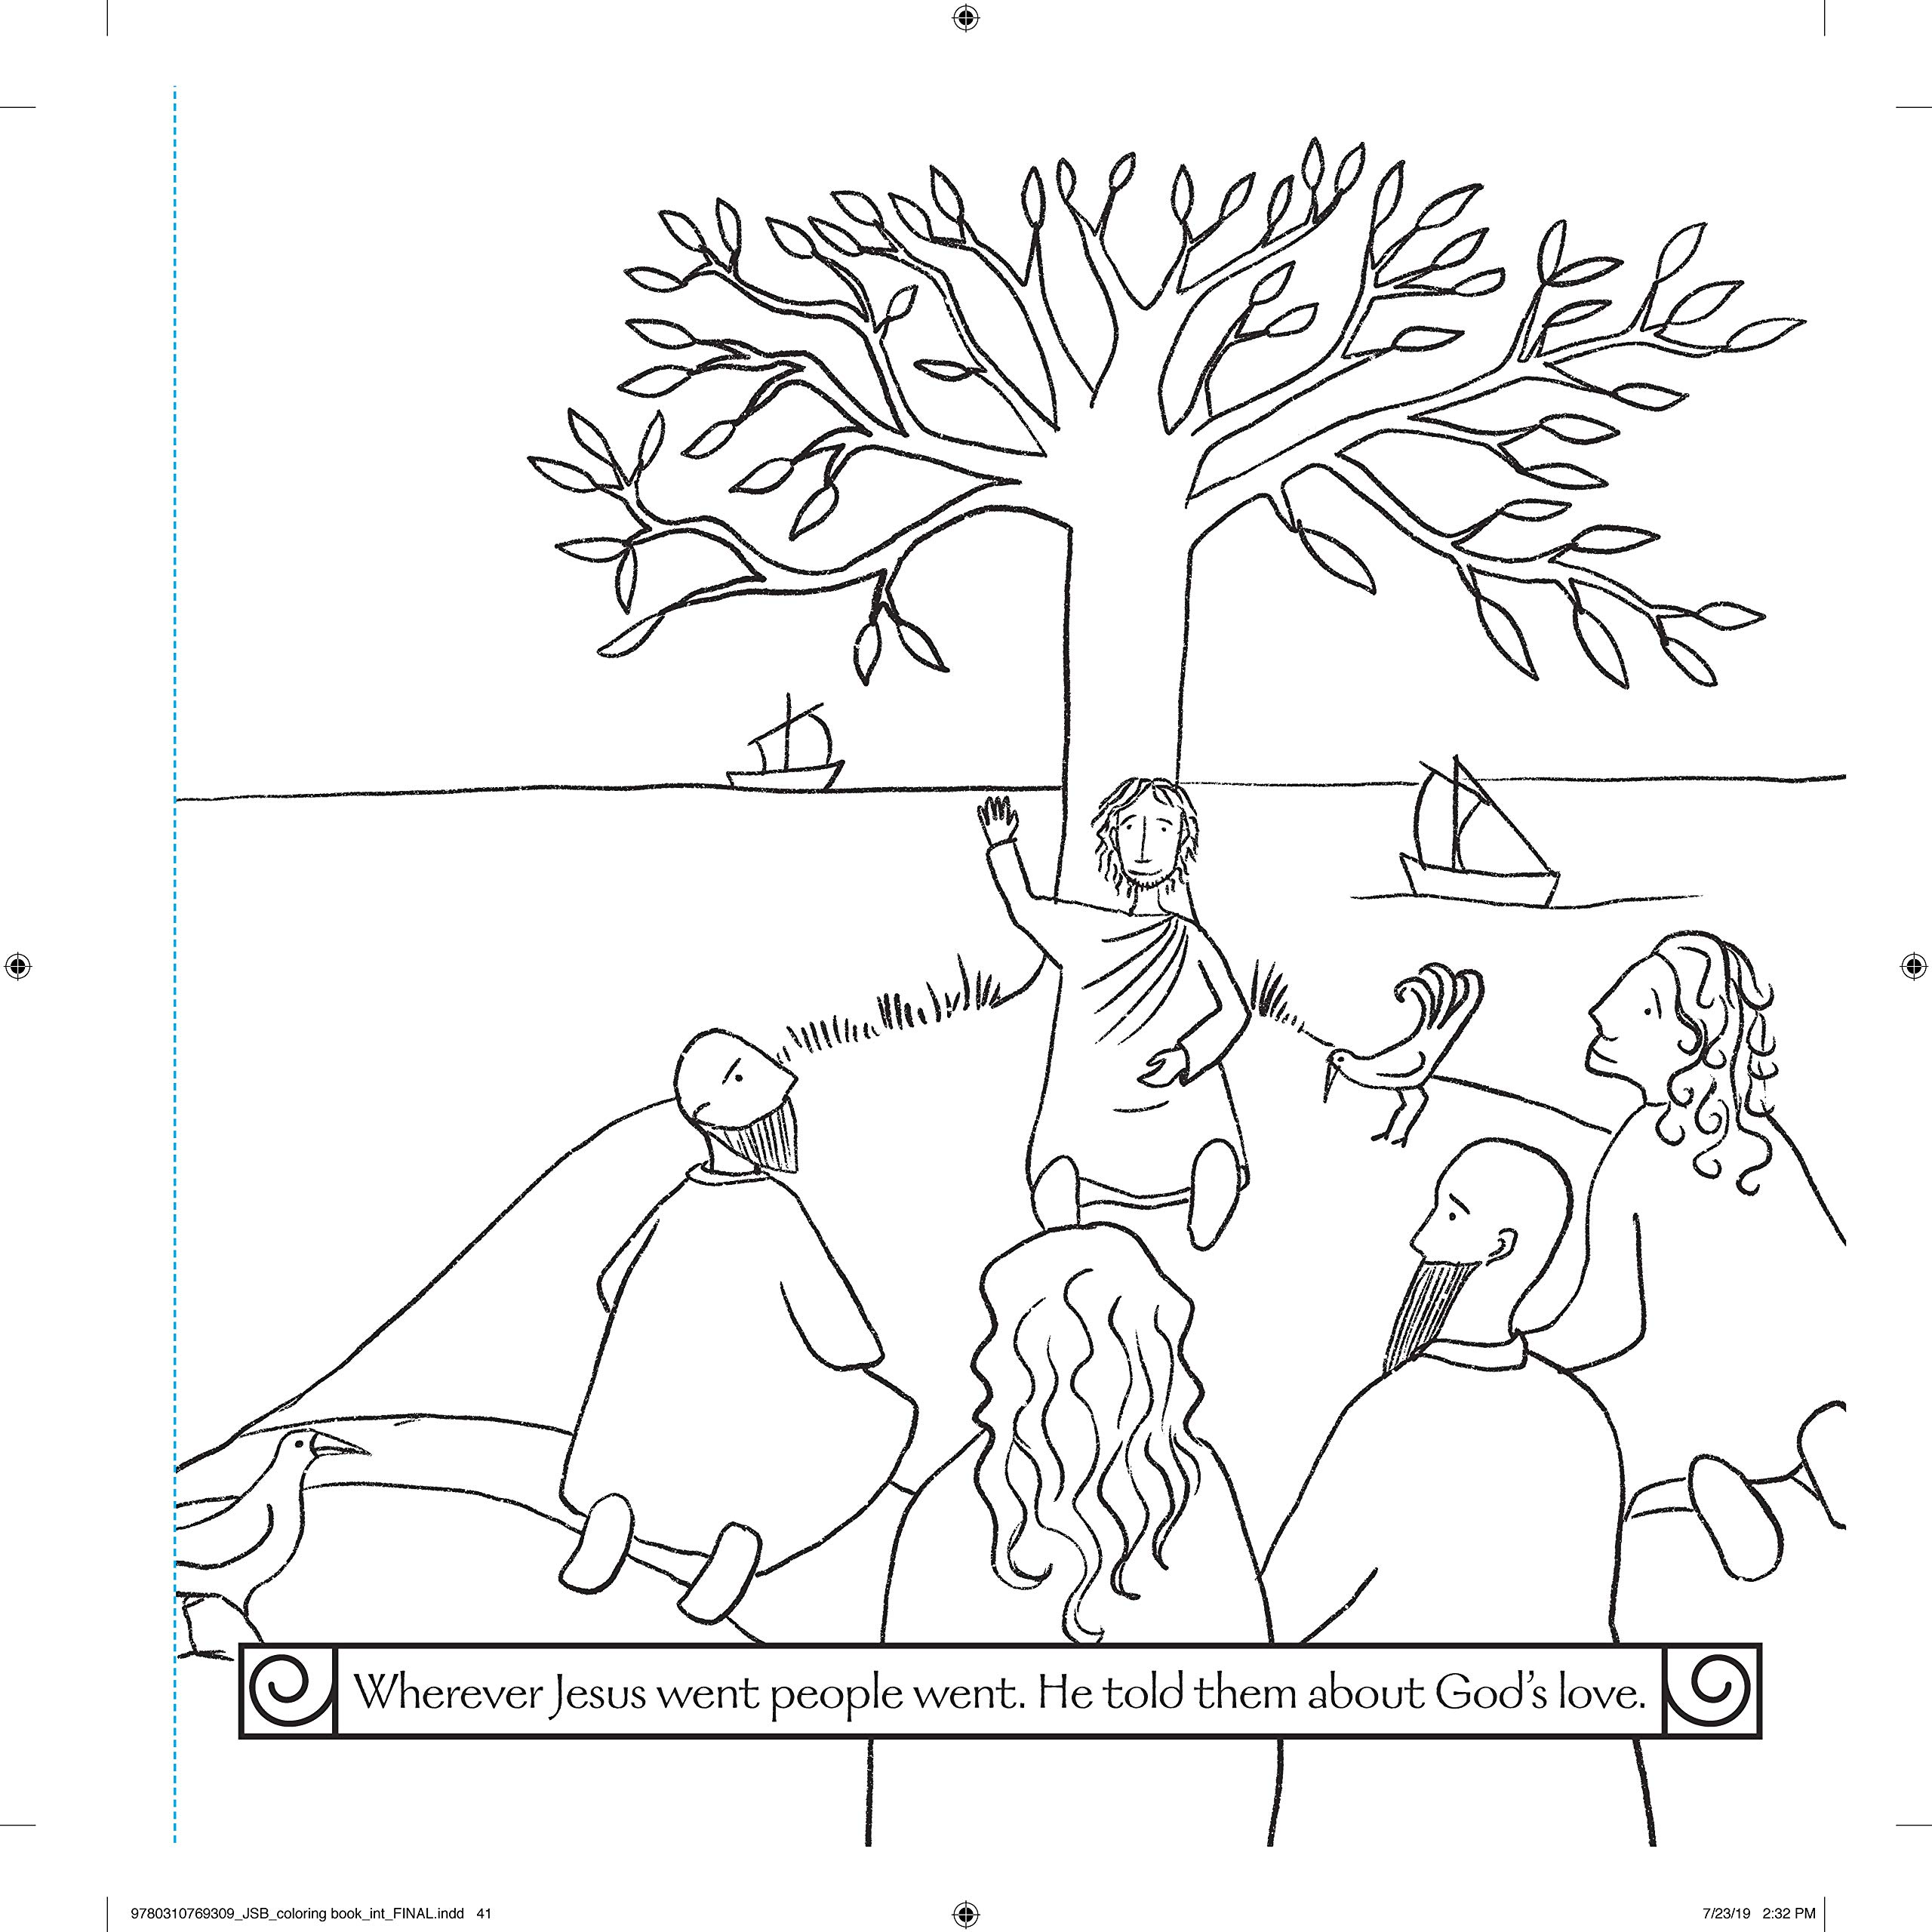 worksheet ~ Biblical Coloring Pages Printable Read And Share Bible ... | 2560x2560